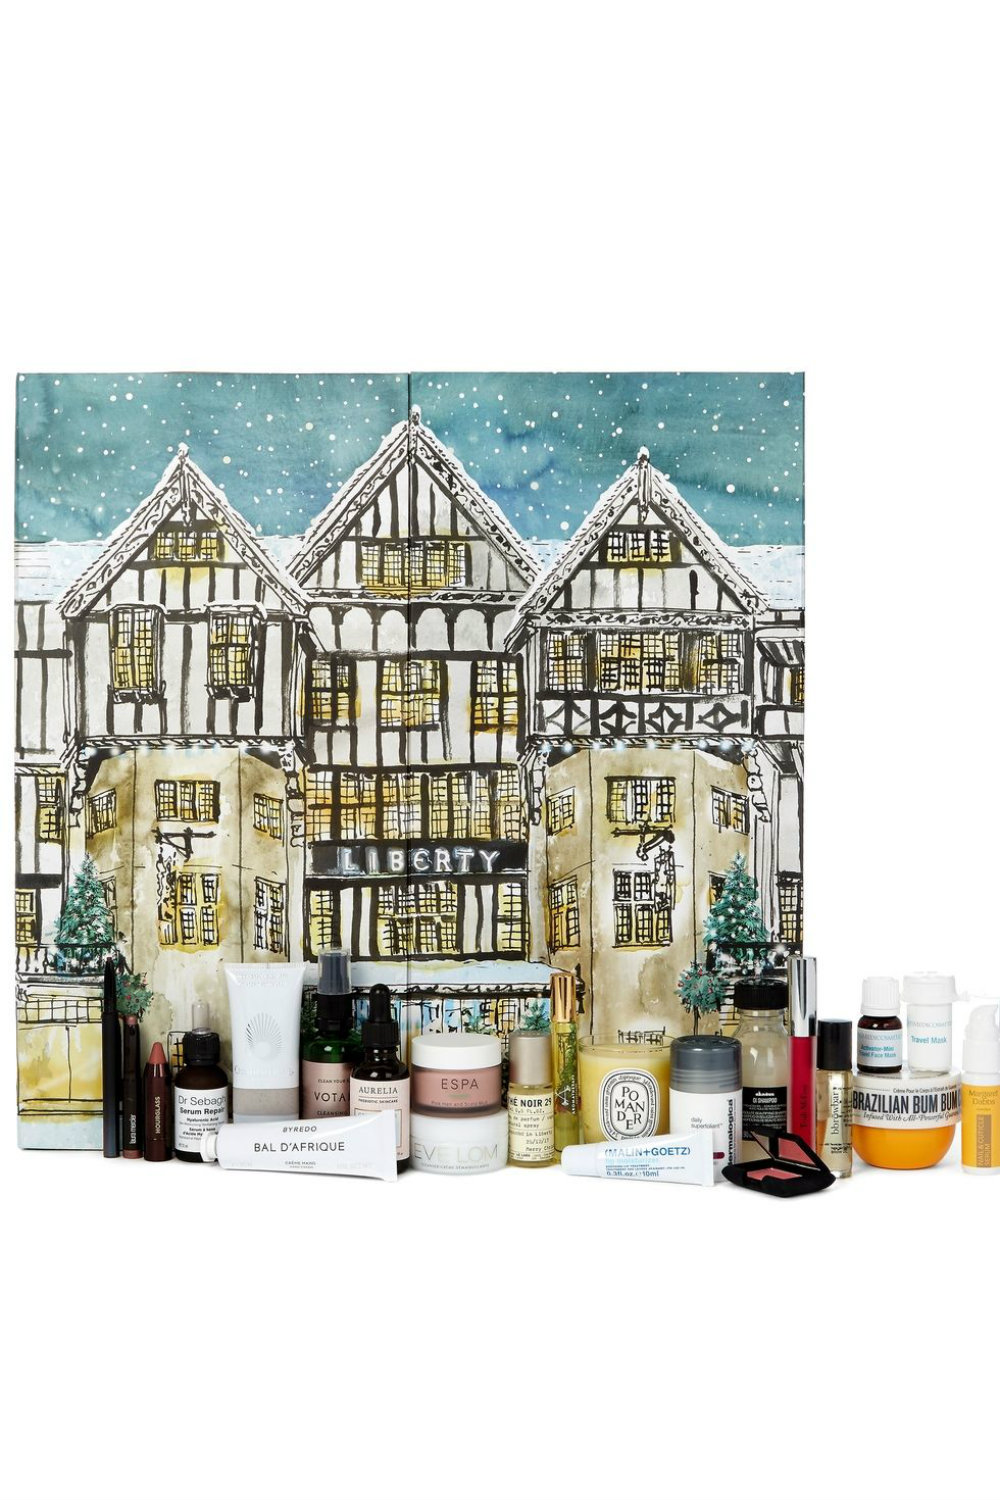 The Best Luxury Advent Calendars for Christmas 2017 04 Luxury Advent Calendars The Best Luxury Advent Calendars for Christmas 2017 The Best Luxury Advent Calendars for Christmas 2017 04